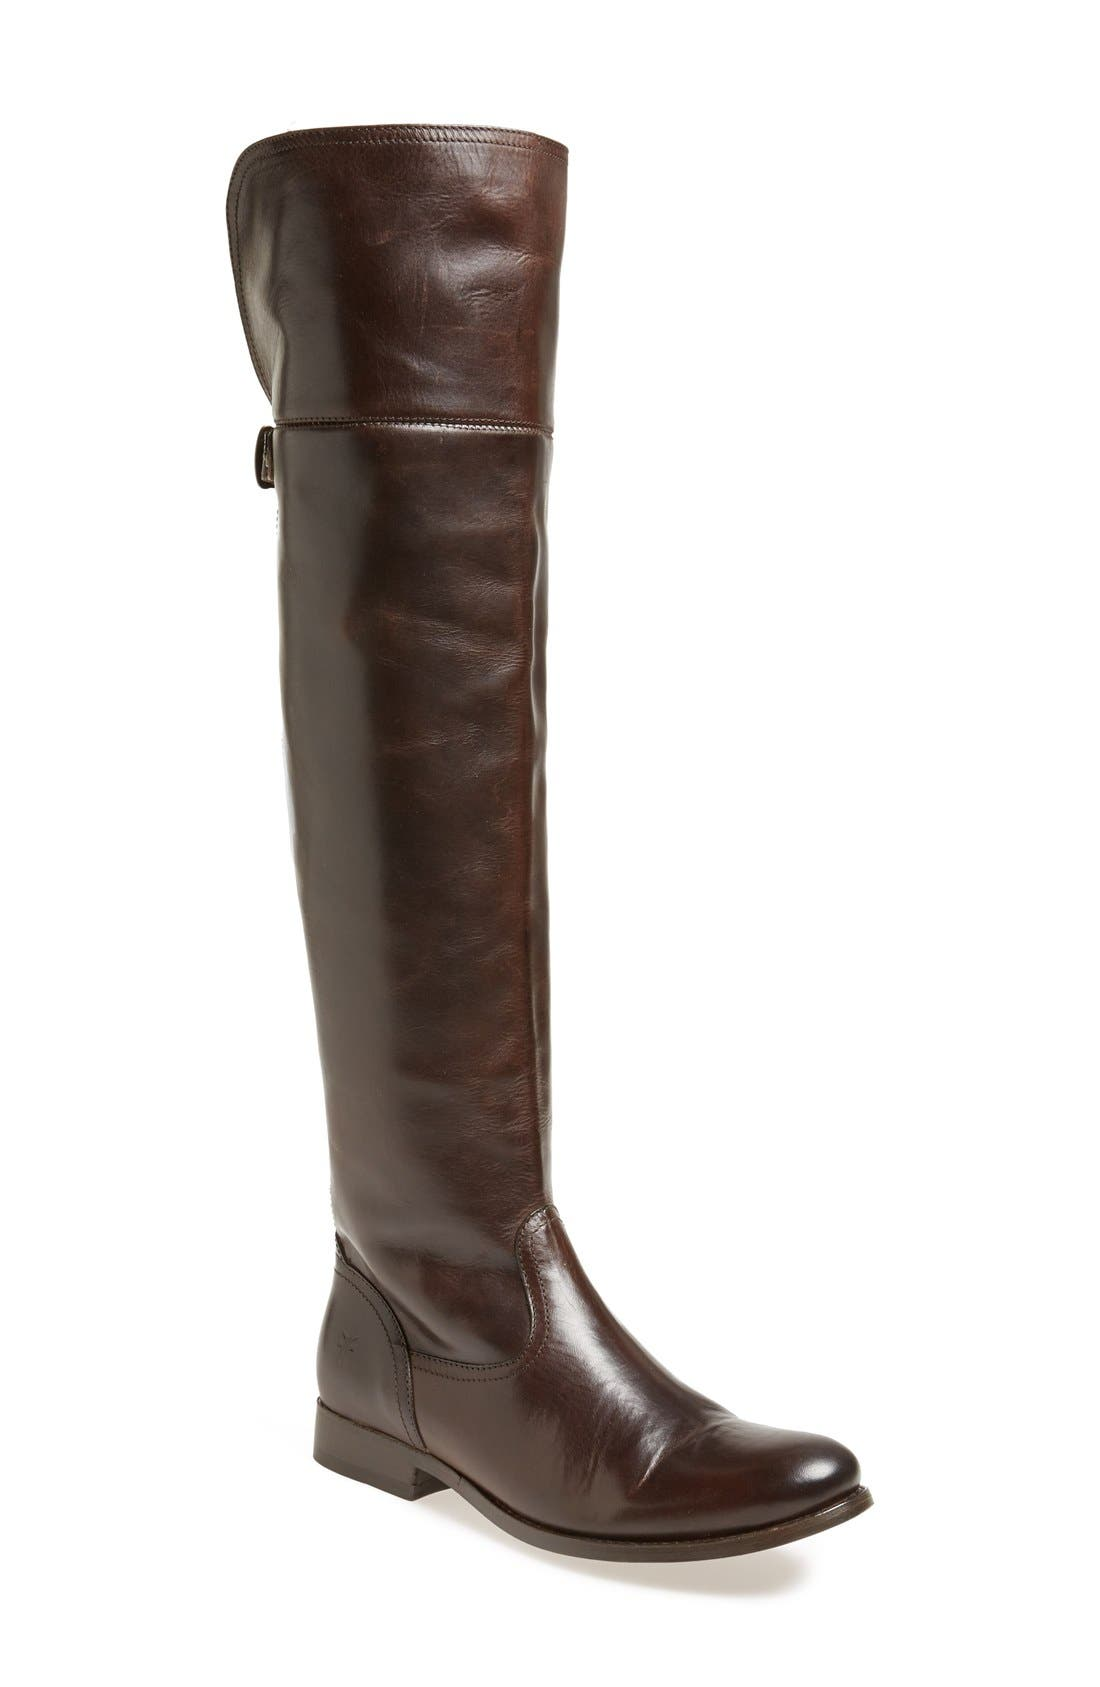 Main Image - Frye 'Melissa' Over the Knee Boot